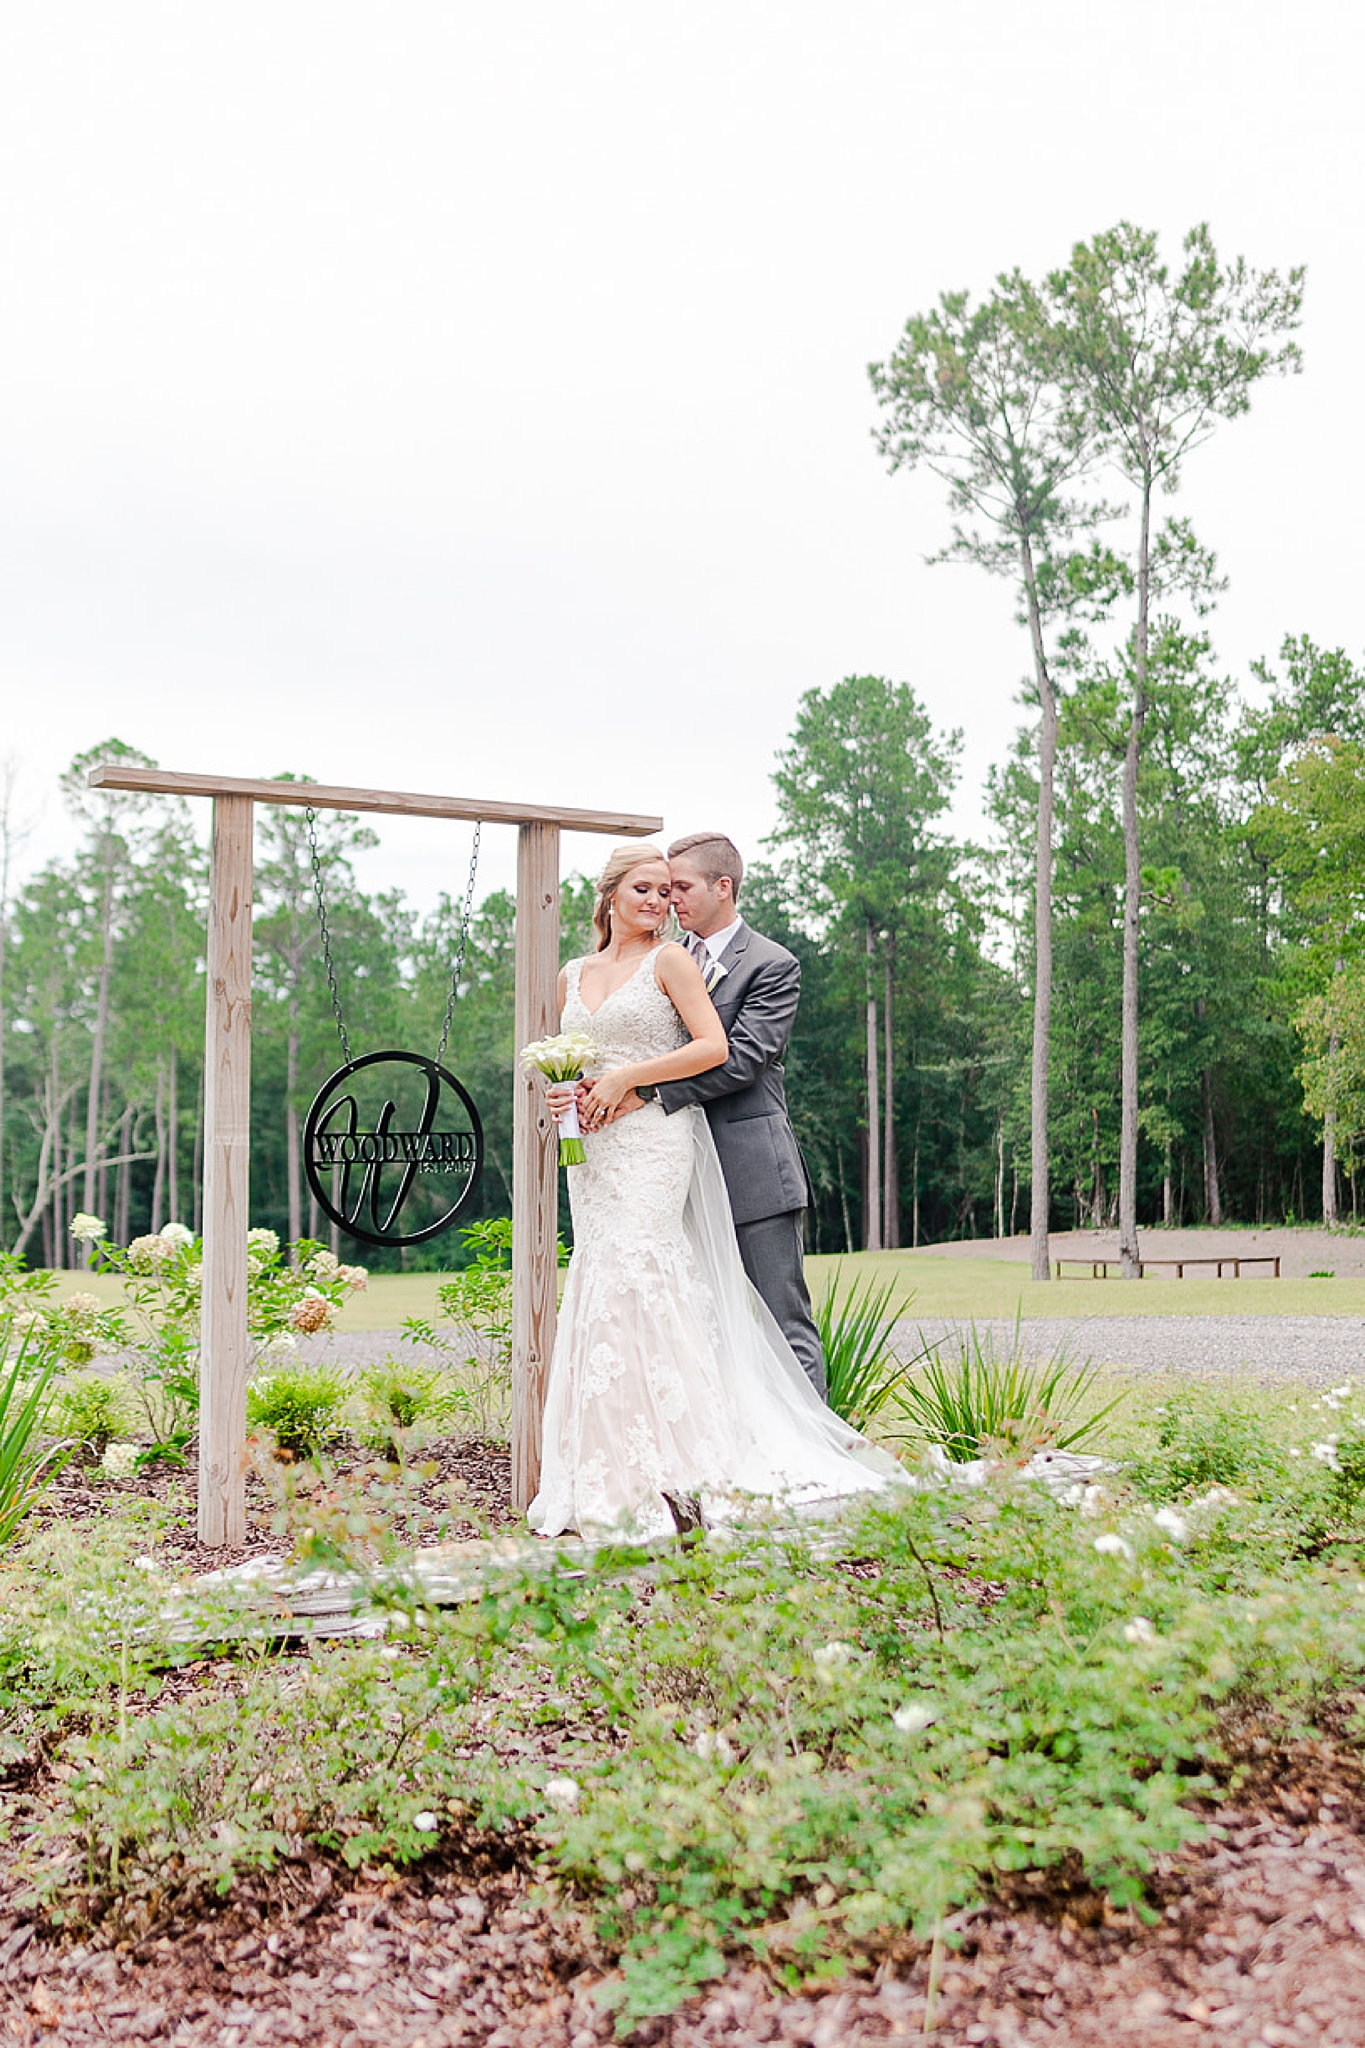 bride and groom pose by metal sign at Izenstone